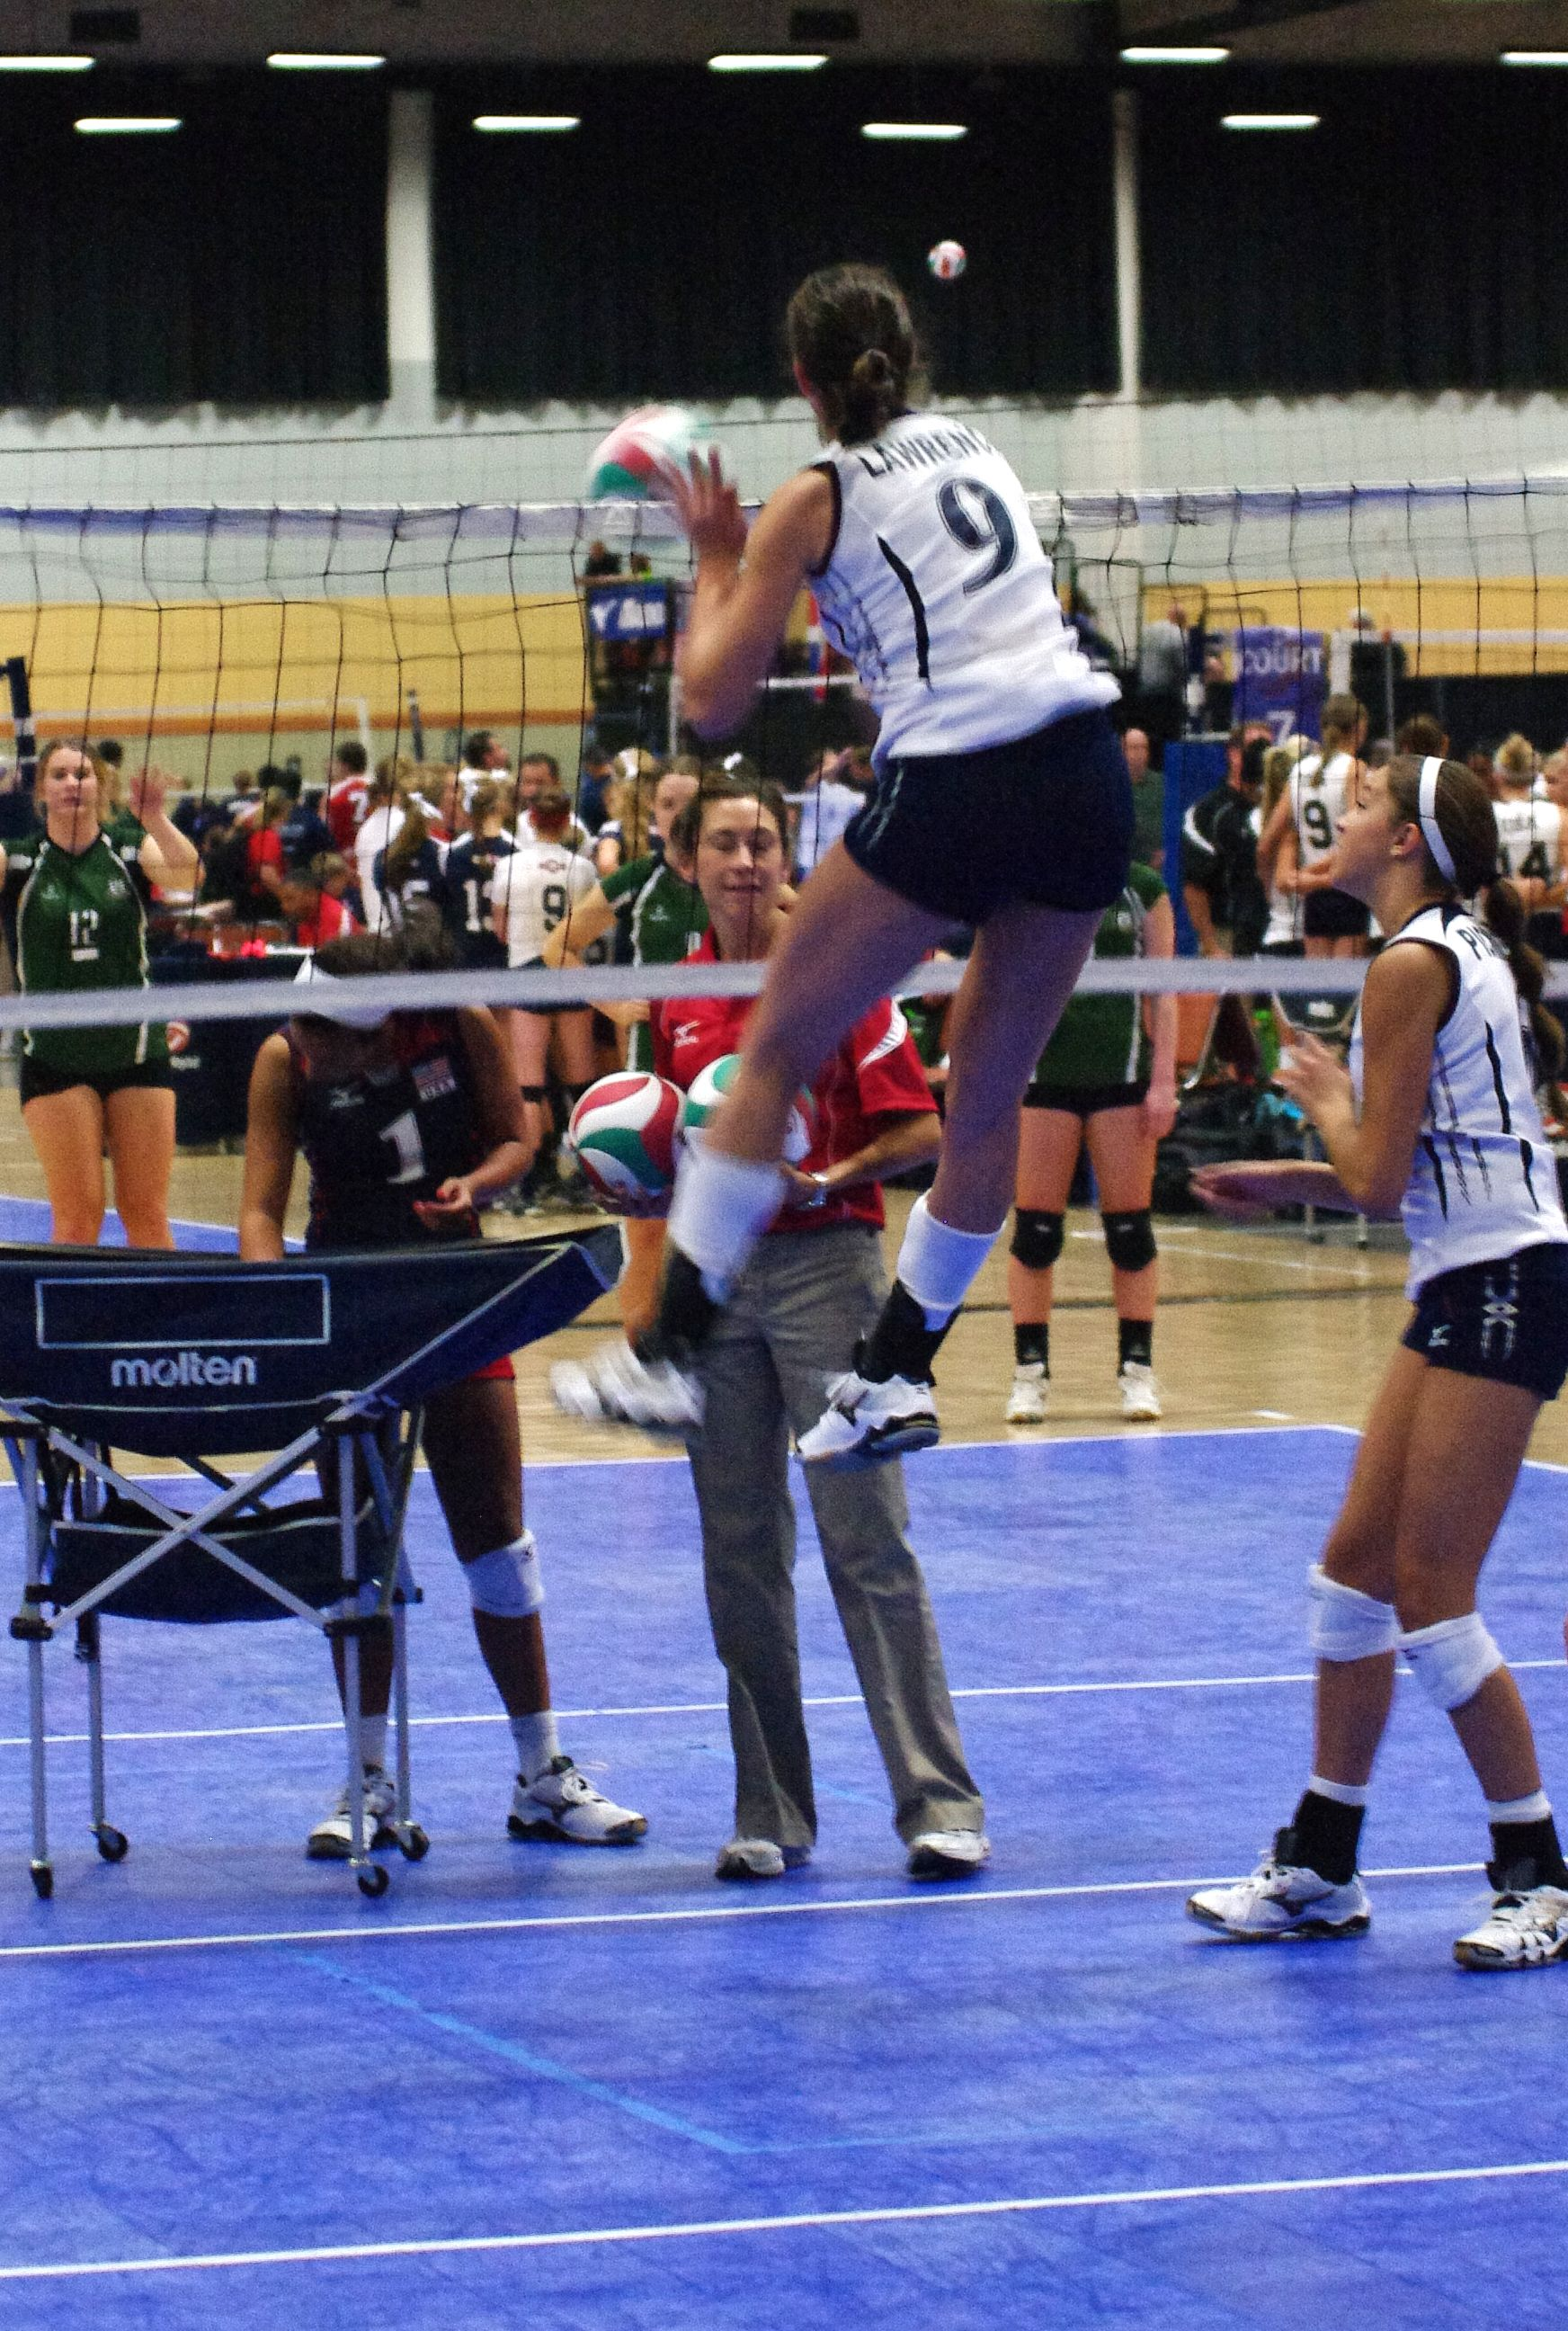 Check Out That Vertical Jump During The Girls Youth National Team S Warmups Thanks For Sharing This Vertical Jump Training Vertical Jump Workout Jump Workout